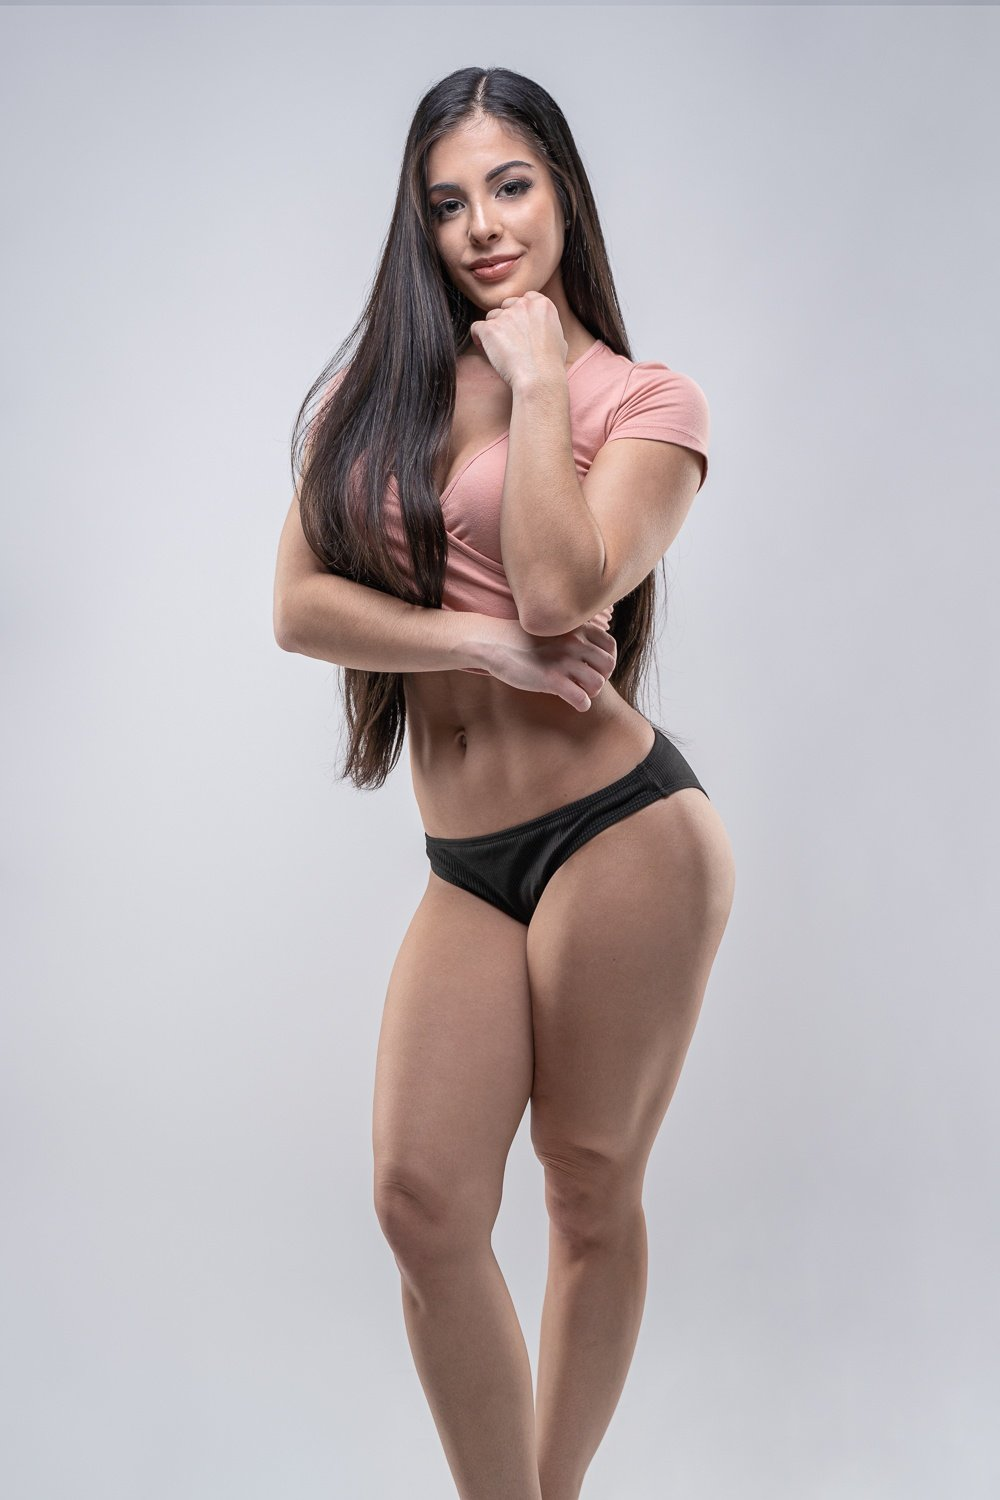 fitness instructor, online fitness coach, online fitness trainer, female fitness model, goldens cast iron kettlebell, goldens cast iron fitness, gym shark woman, green fitness clothing, female fitness model, gymshark fitness gear, gymshark fitness apparel, NPC bikini competitor